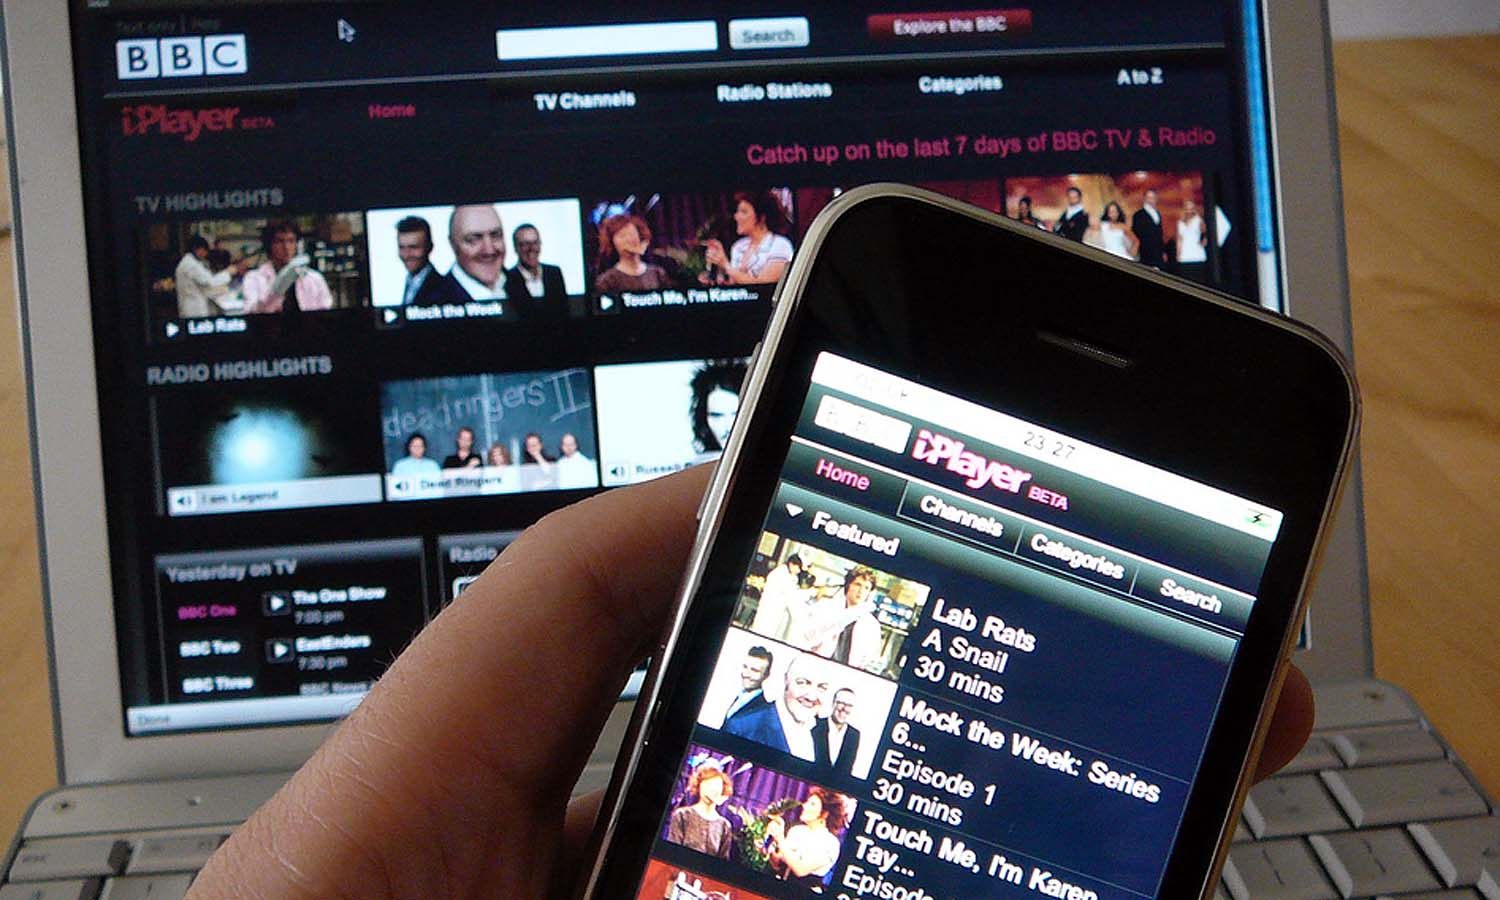 BBC iPlayer for Android and iOS Gets New Home Screen and Features